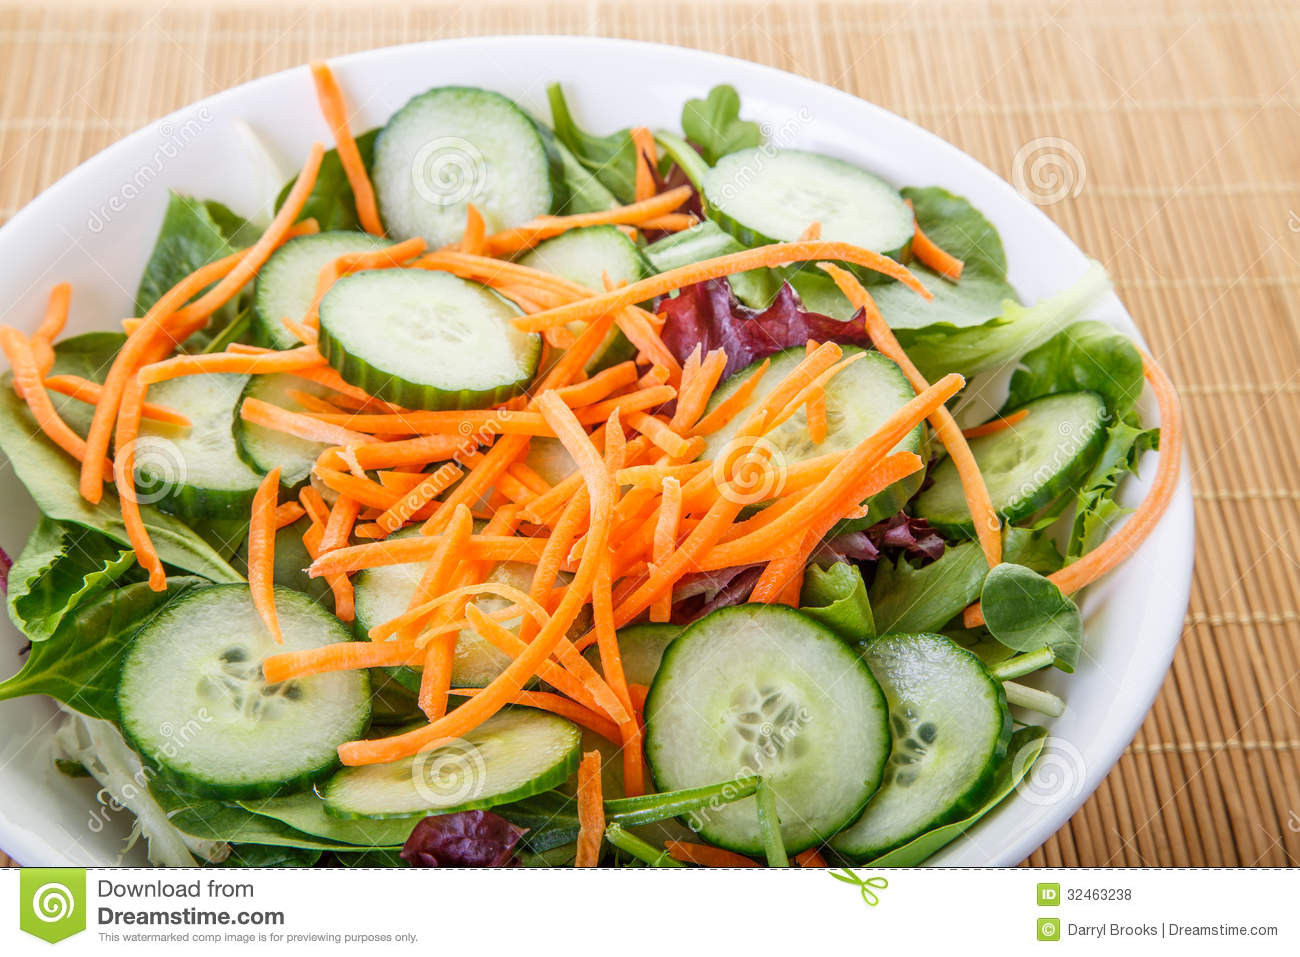 Shredded Carrots On Salad Closeup Royalty Free Stock Photos - Image ...